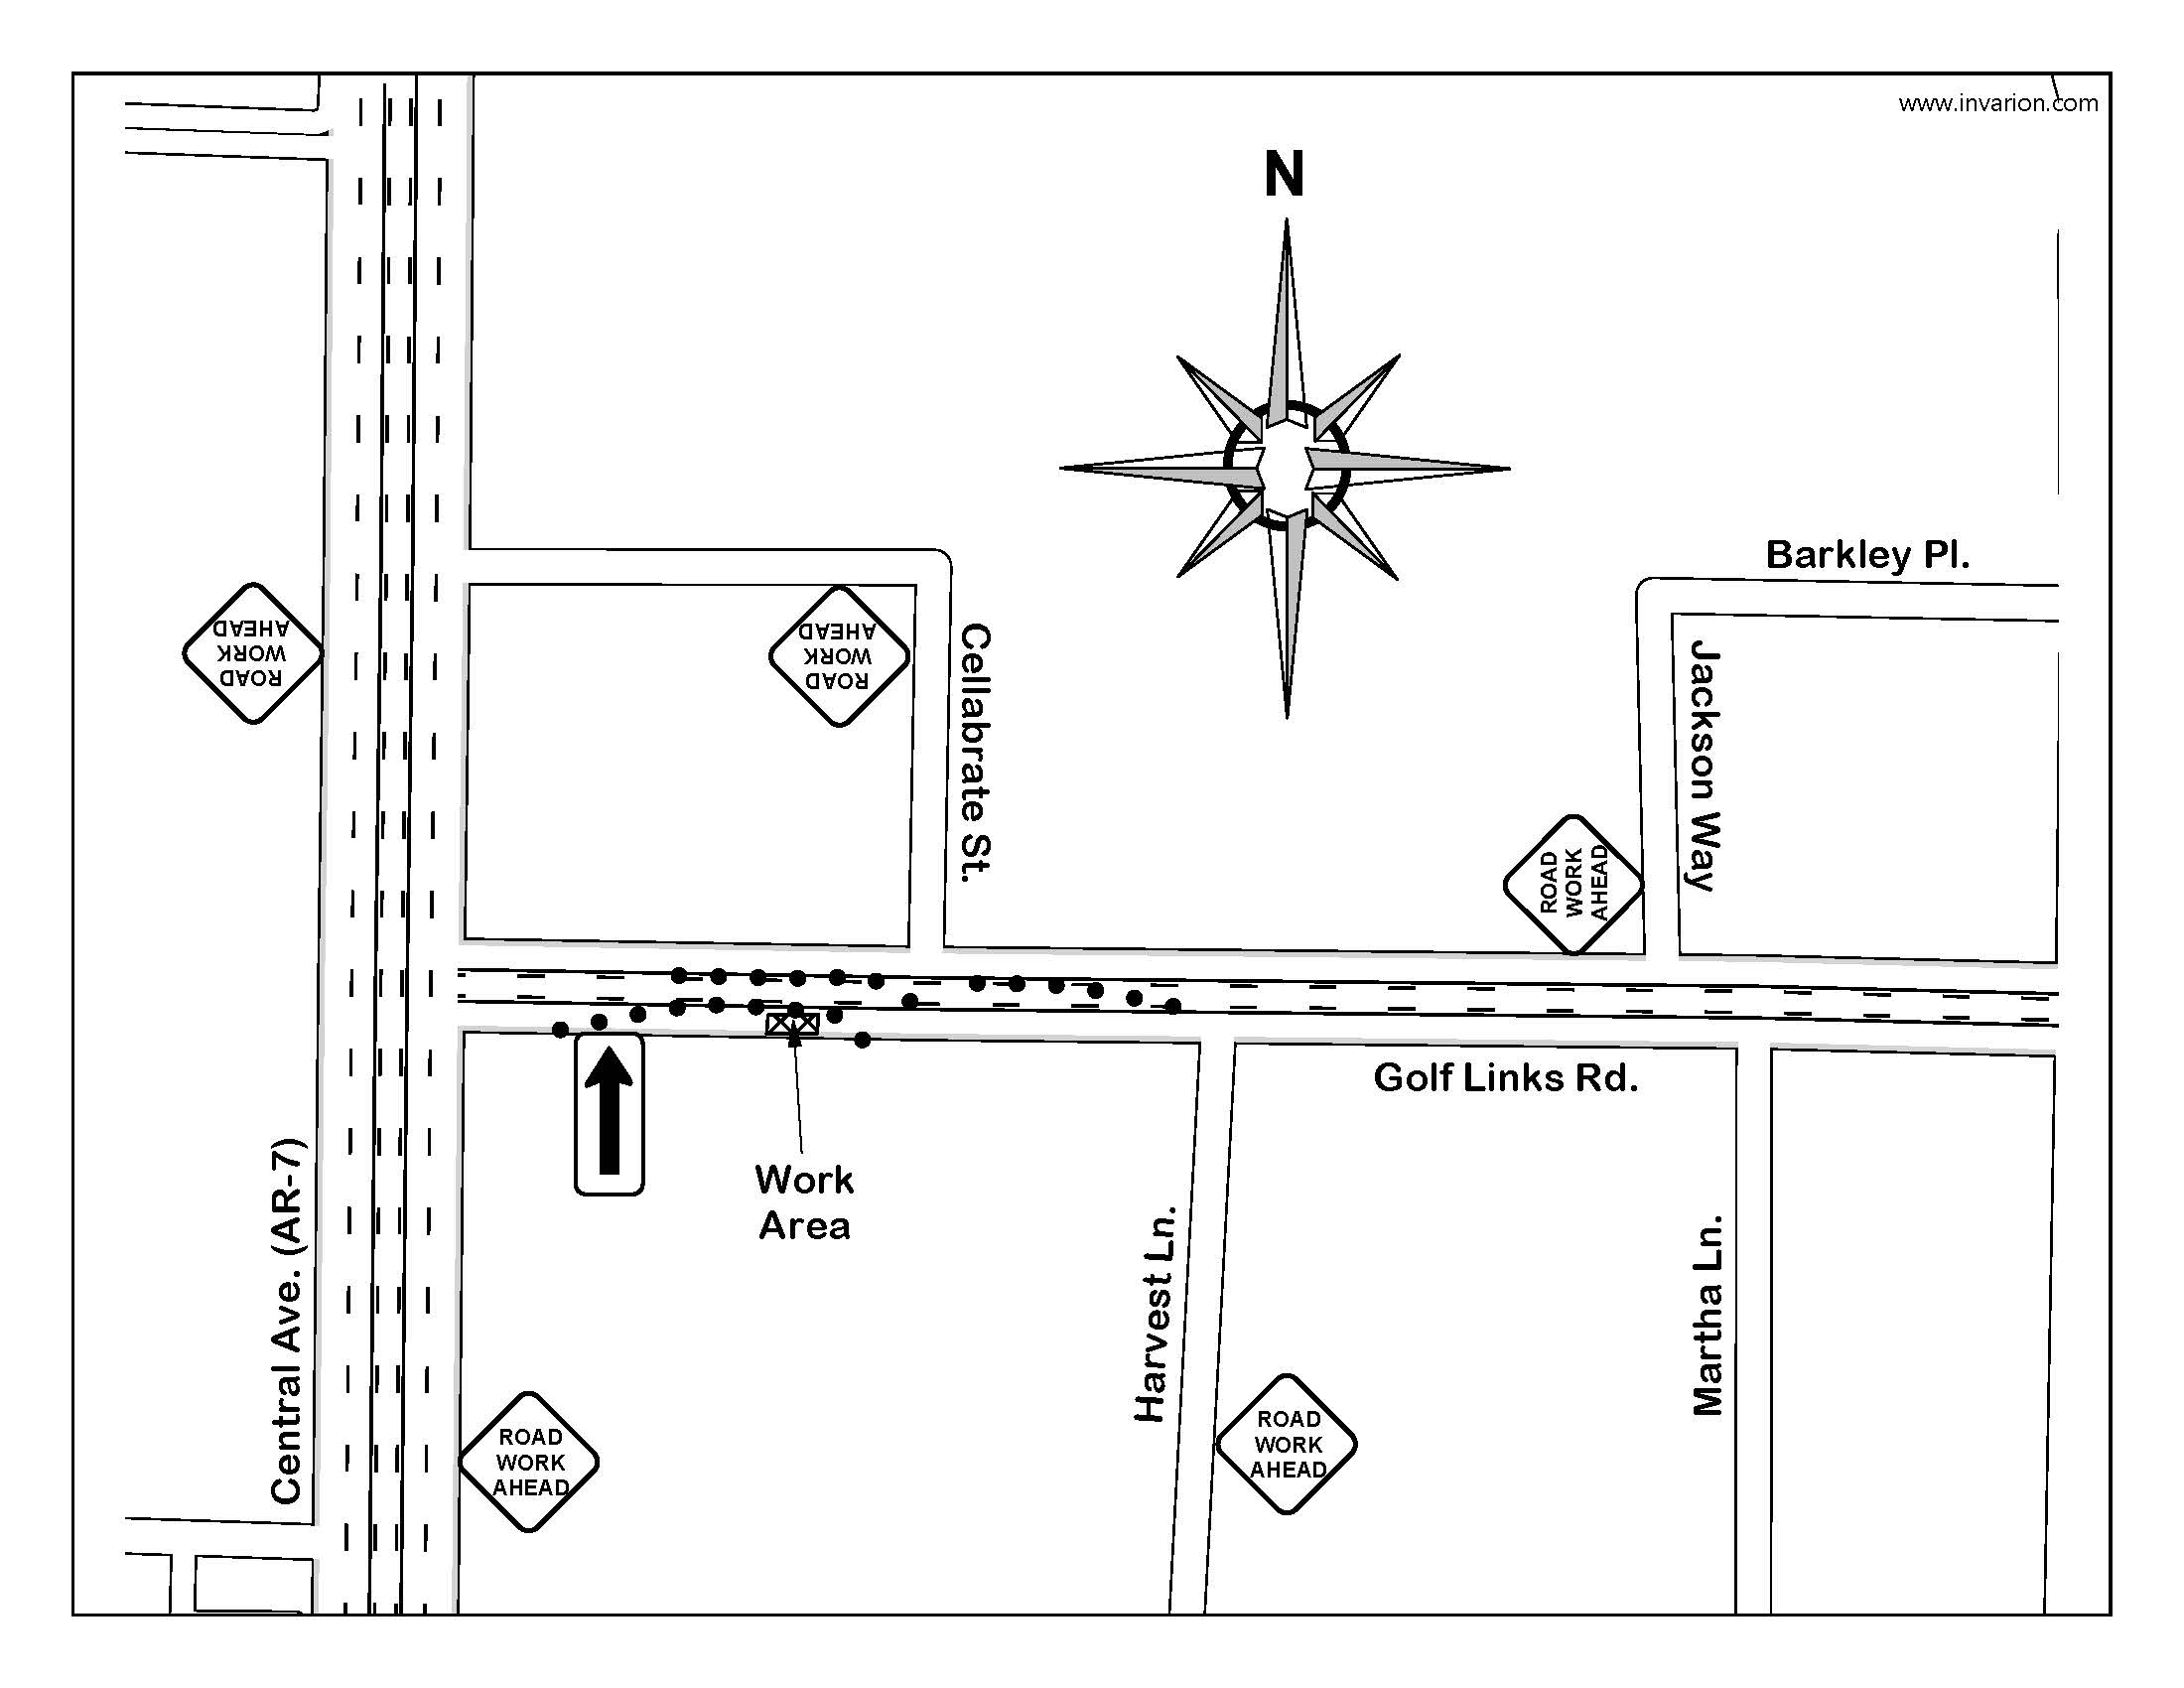 Centerpoint Energy-127 Golf Links Rd Traffic Control Plan